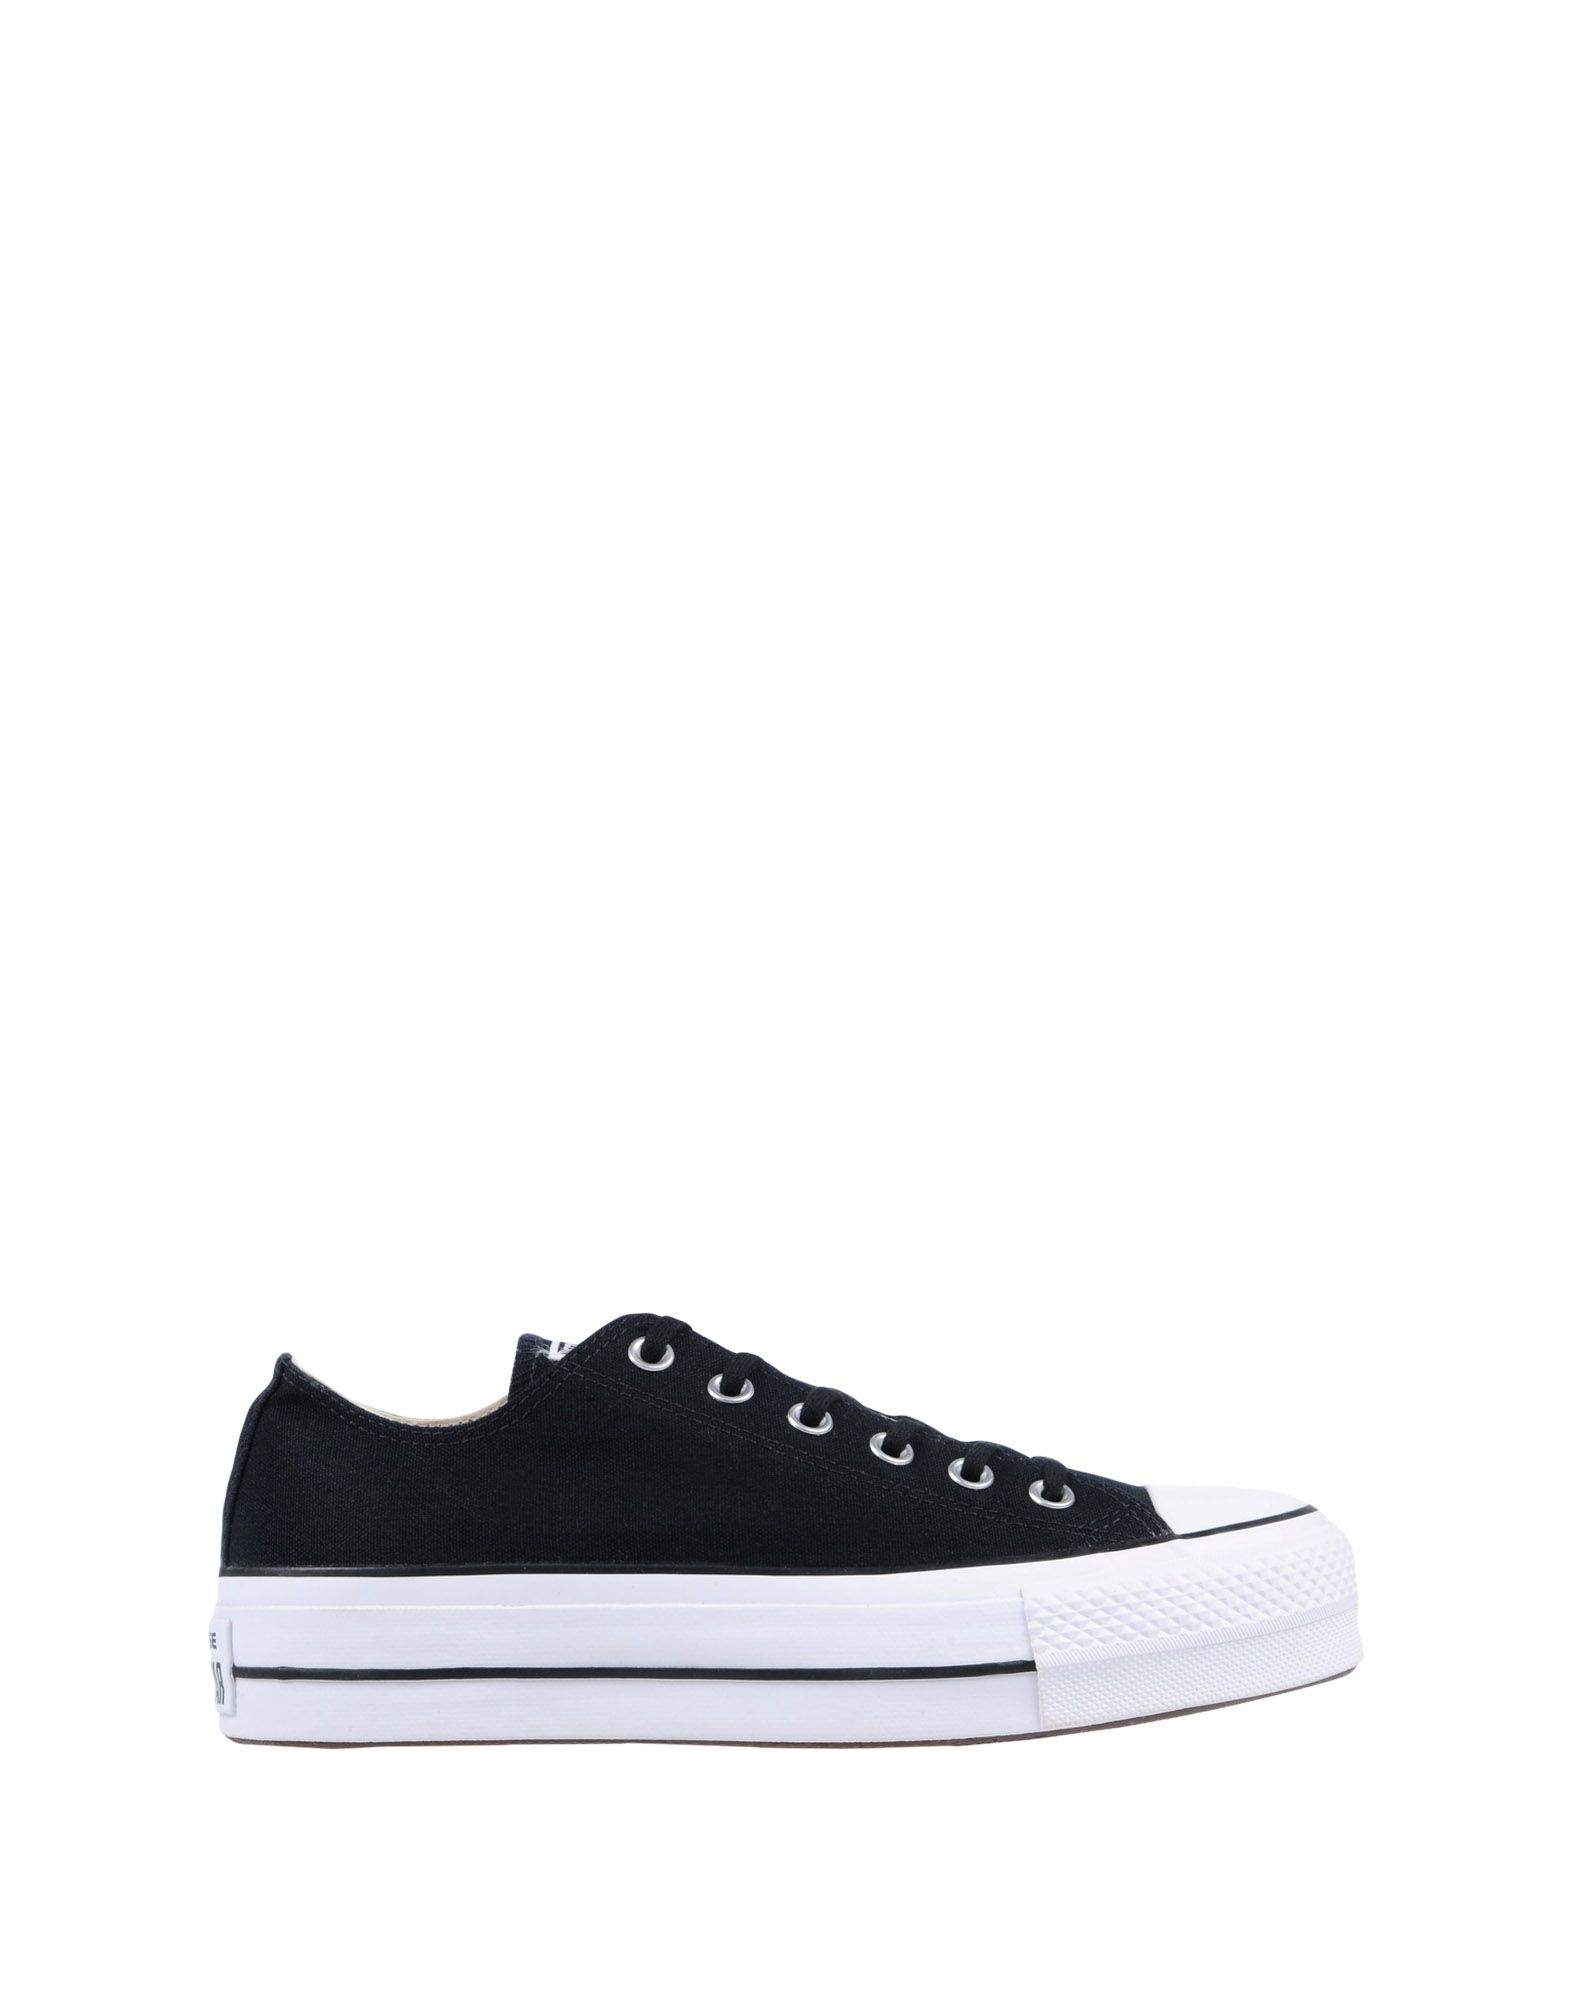 Sneakers Converse All Star Ctas Ox Lift Clean Core Canvas - Femme - Sneakers Converse All Star sur